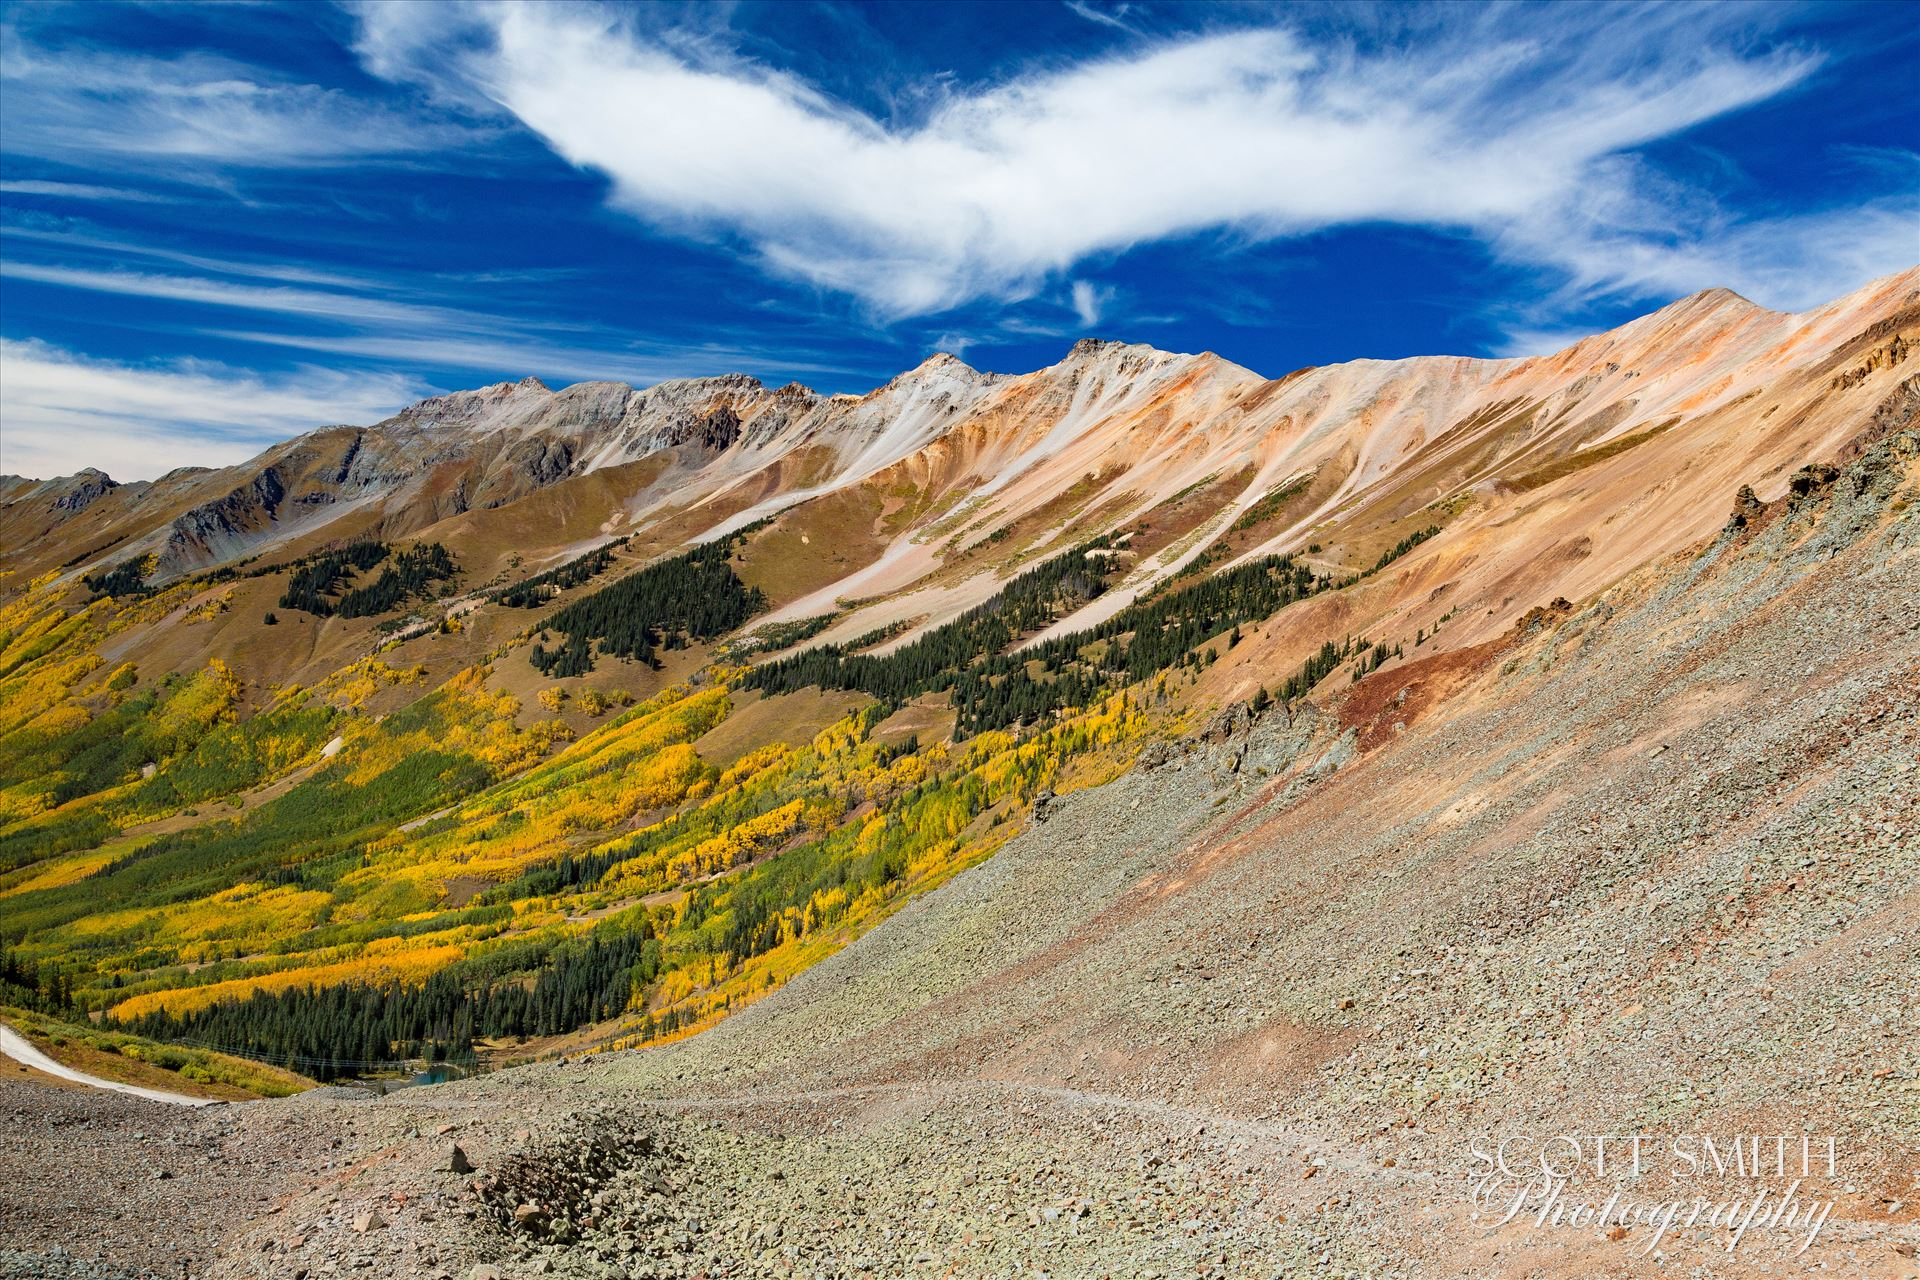 Ophir Pass 1 Just west of the Ophir Pass summit, between Ouray and Silverton Colorado in the fall. by Scott Smith Photos